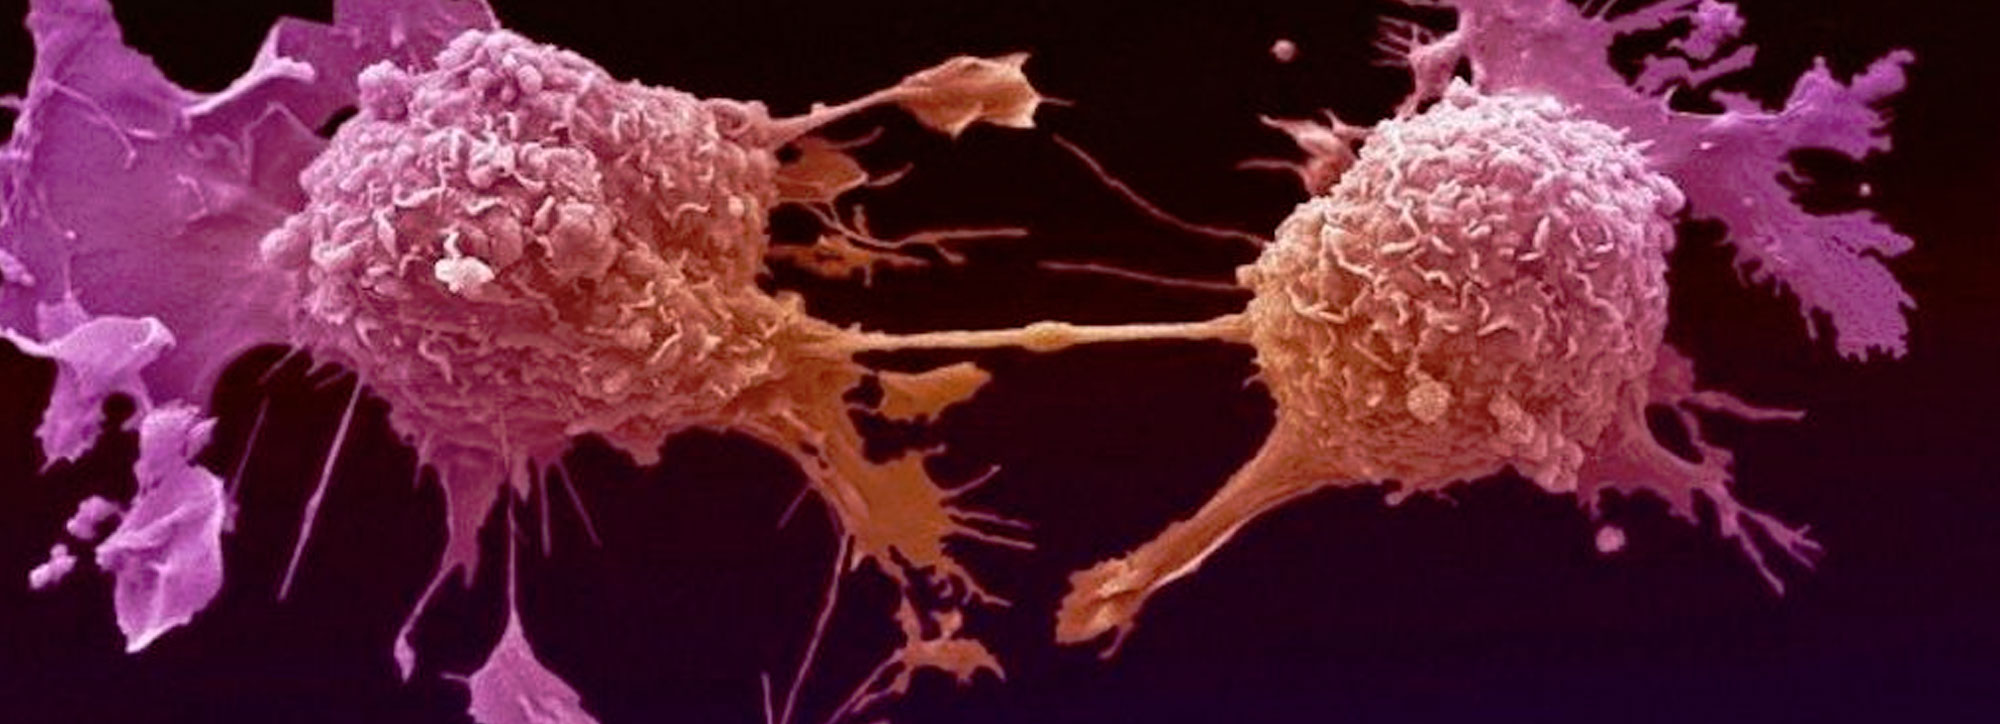 Cancer Cells Destroyed